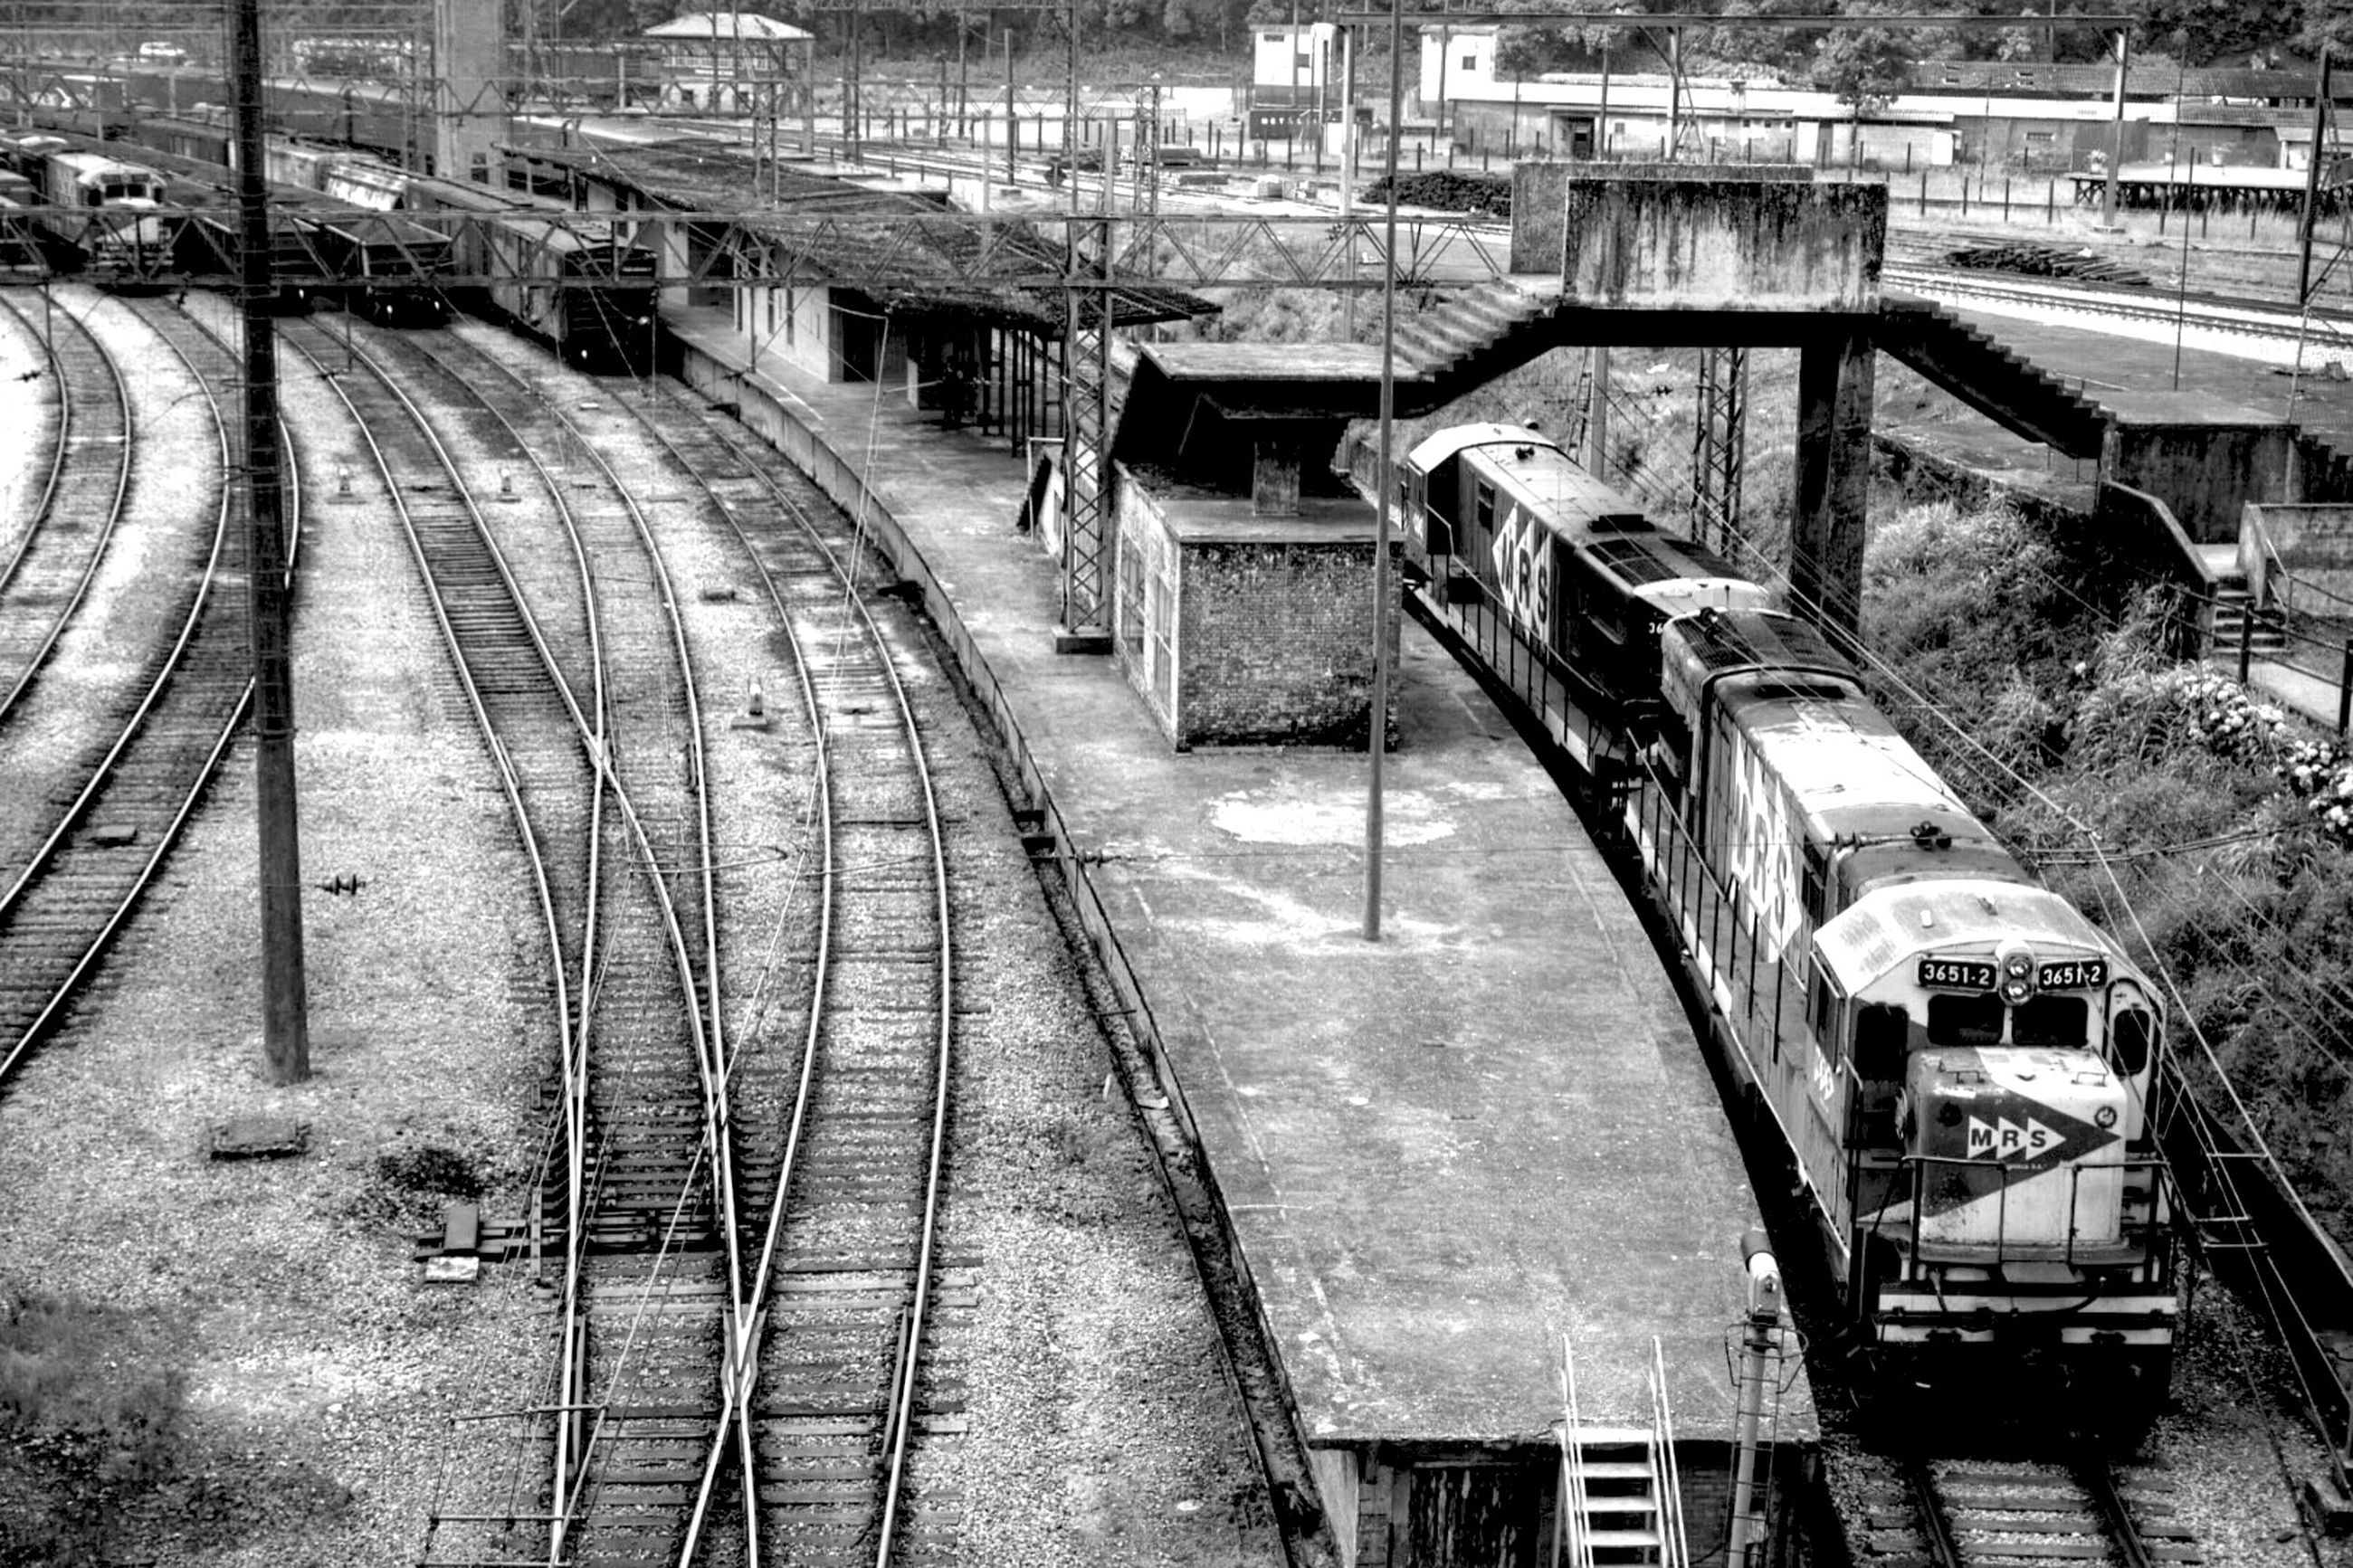 built structure, architecture, transportation, high angle view, building exterior, railroad track, the way forward, rail transportation, diminishing perspective, vanishing point, connection, railing, incidental people, city, mode of transport, day, bridge - man made structure, outdoors, canal, public transportation